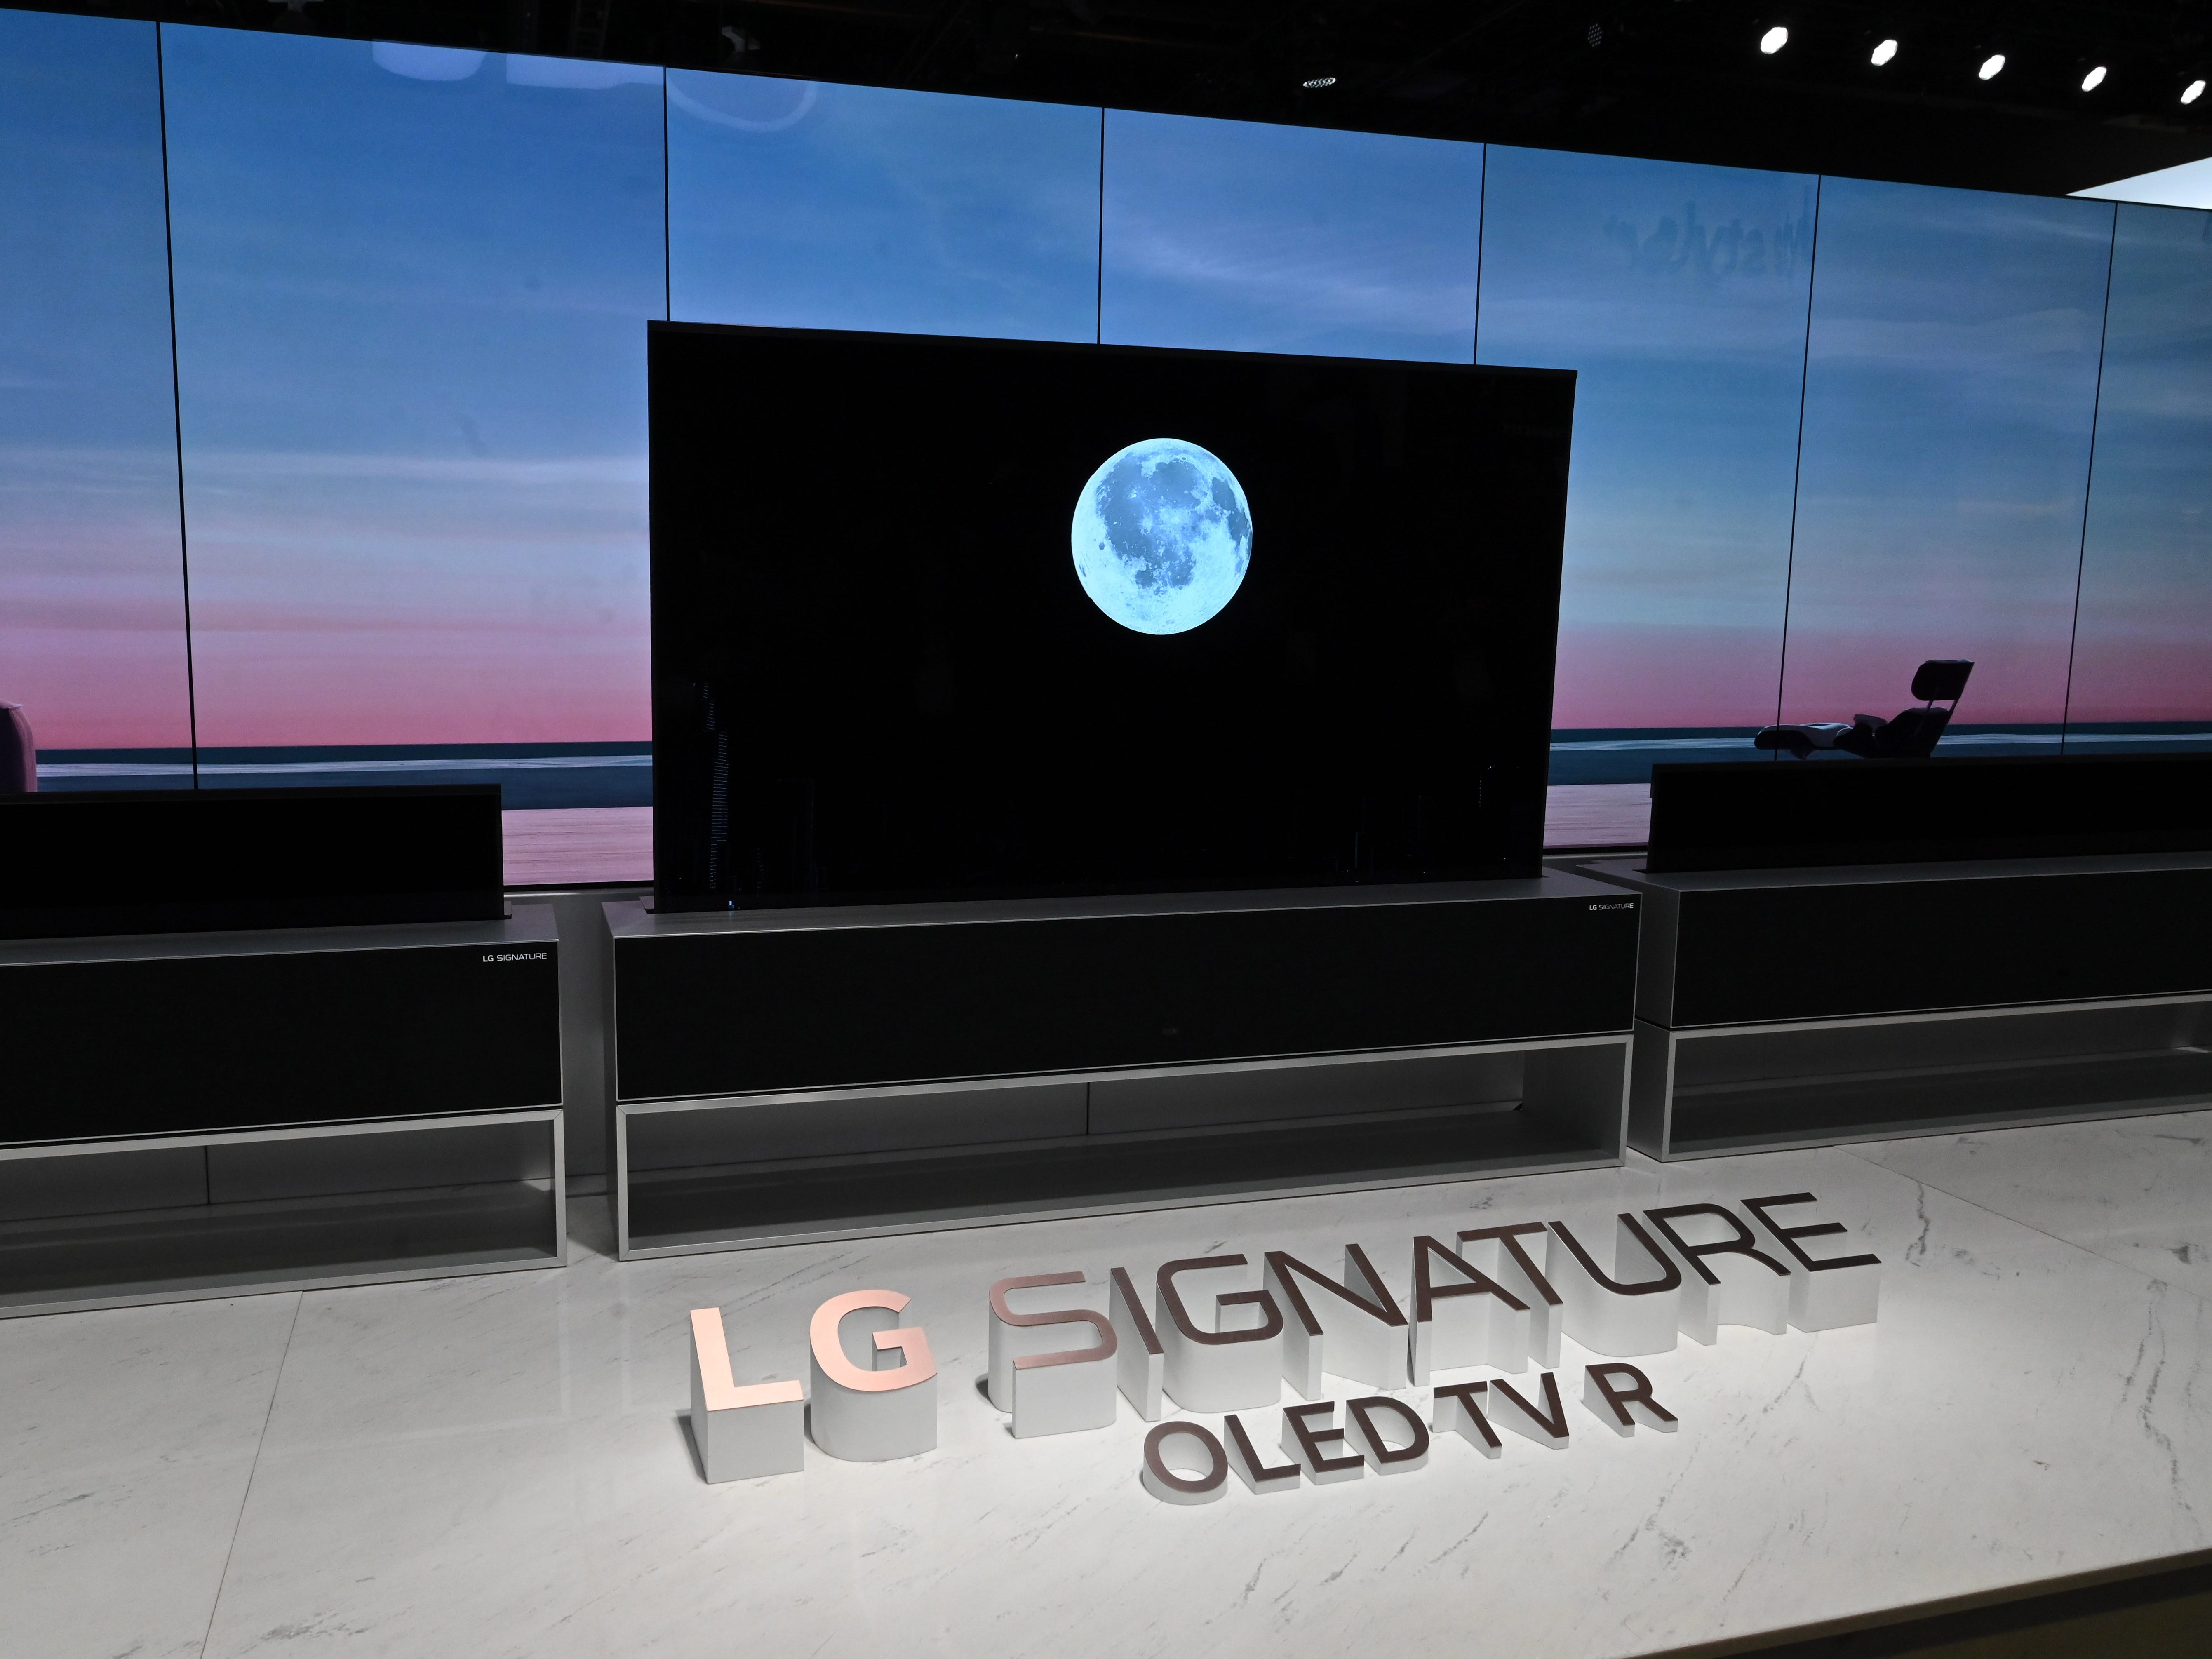 The LG Signature OLED TV is the first rollup television.